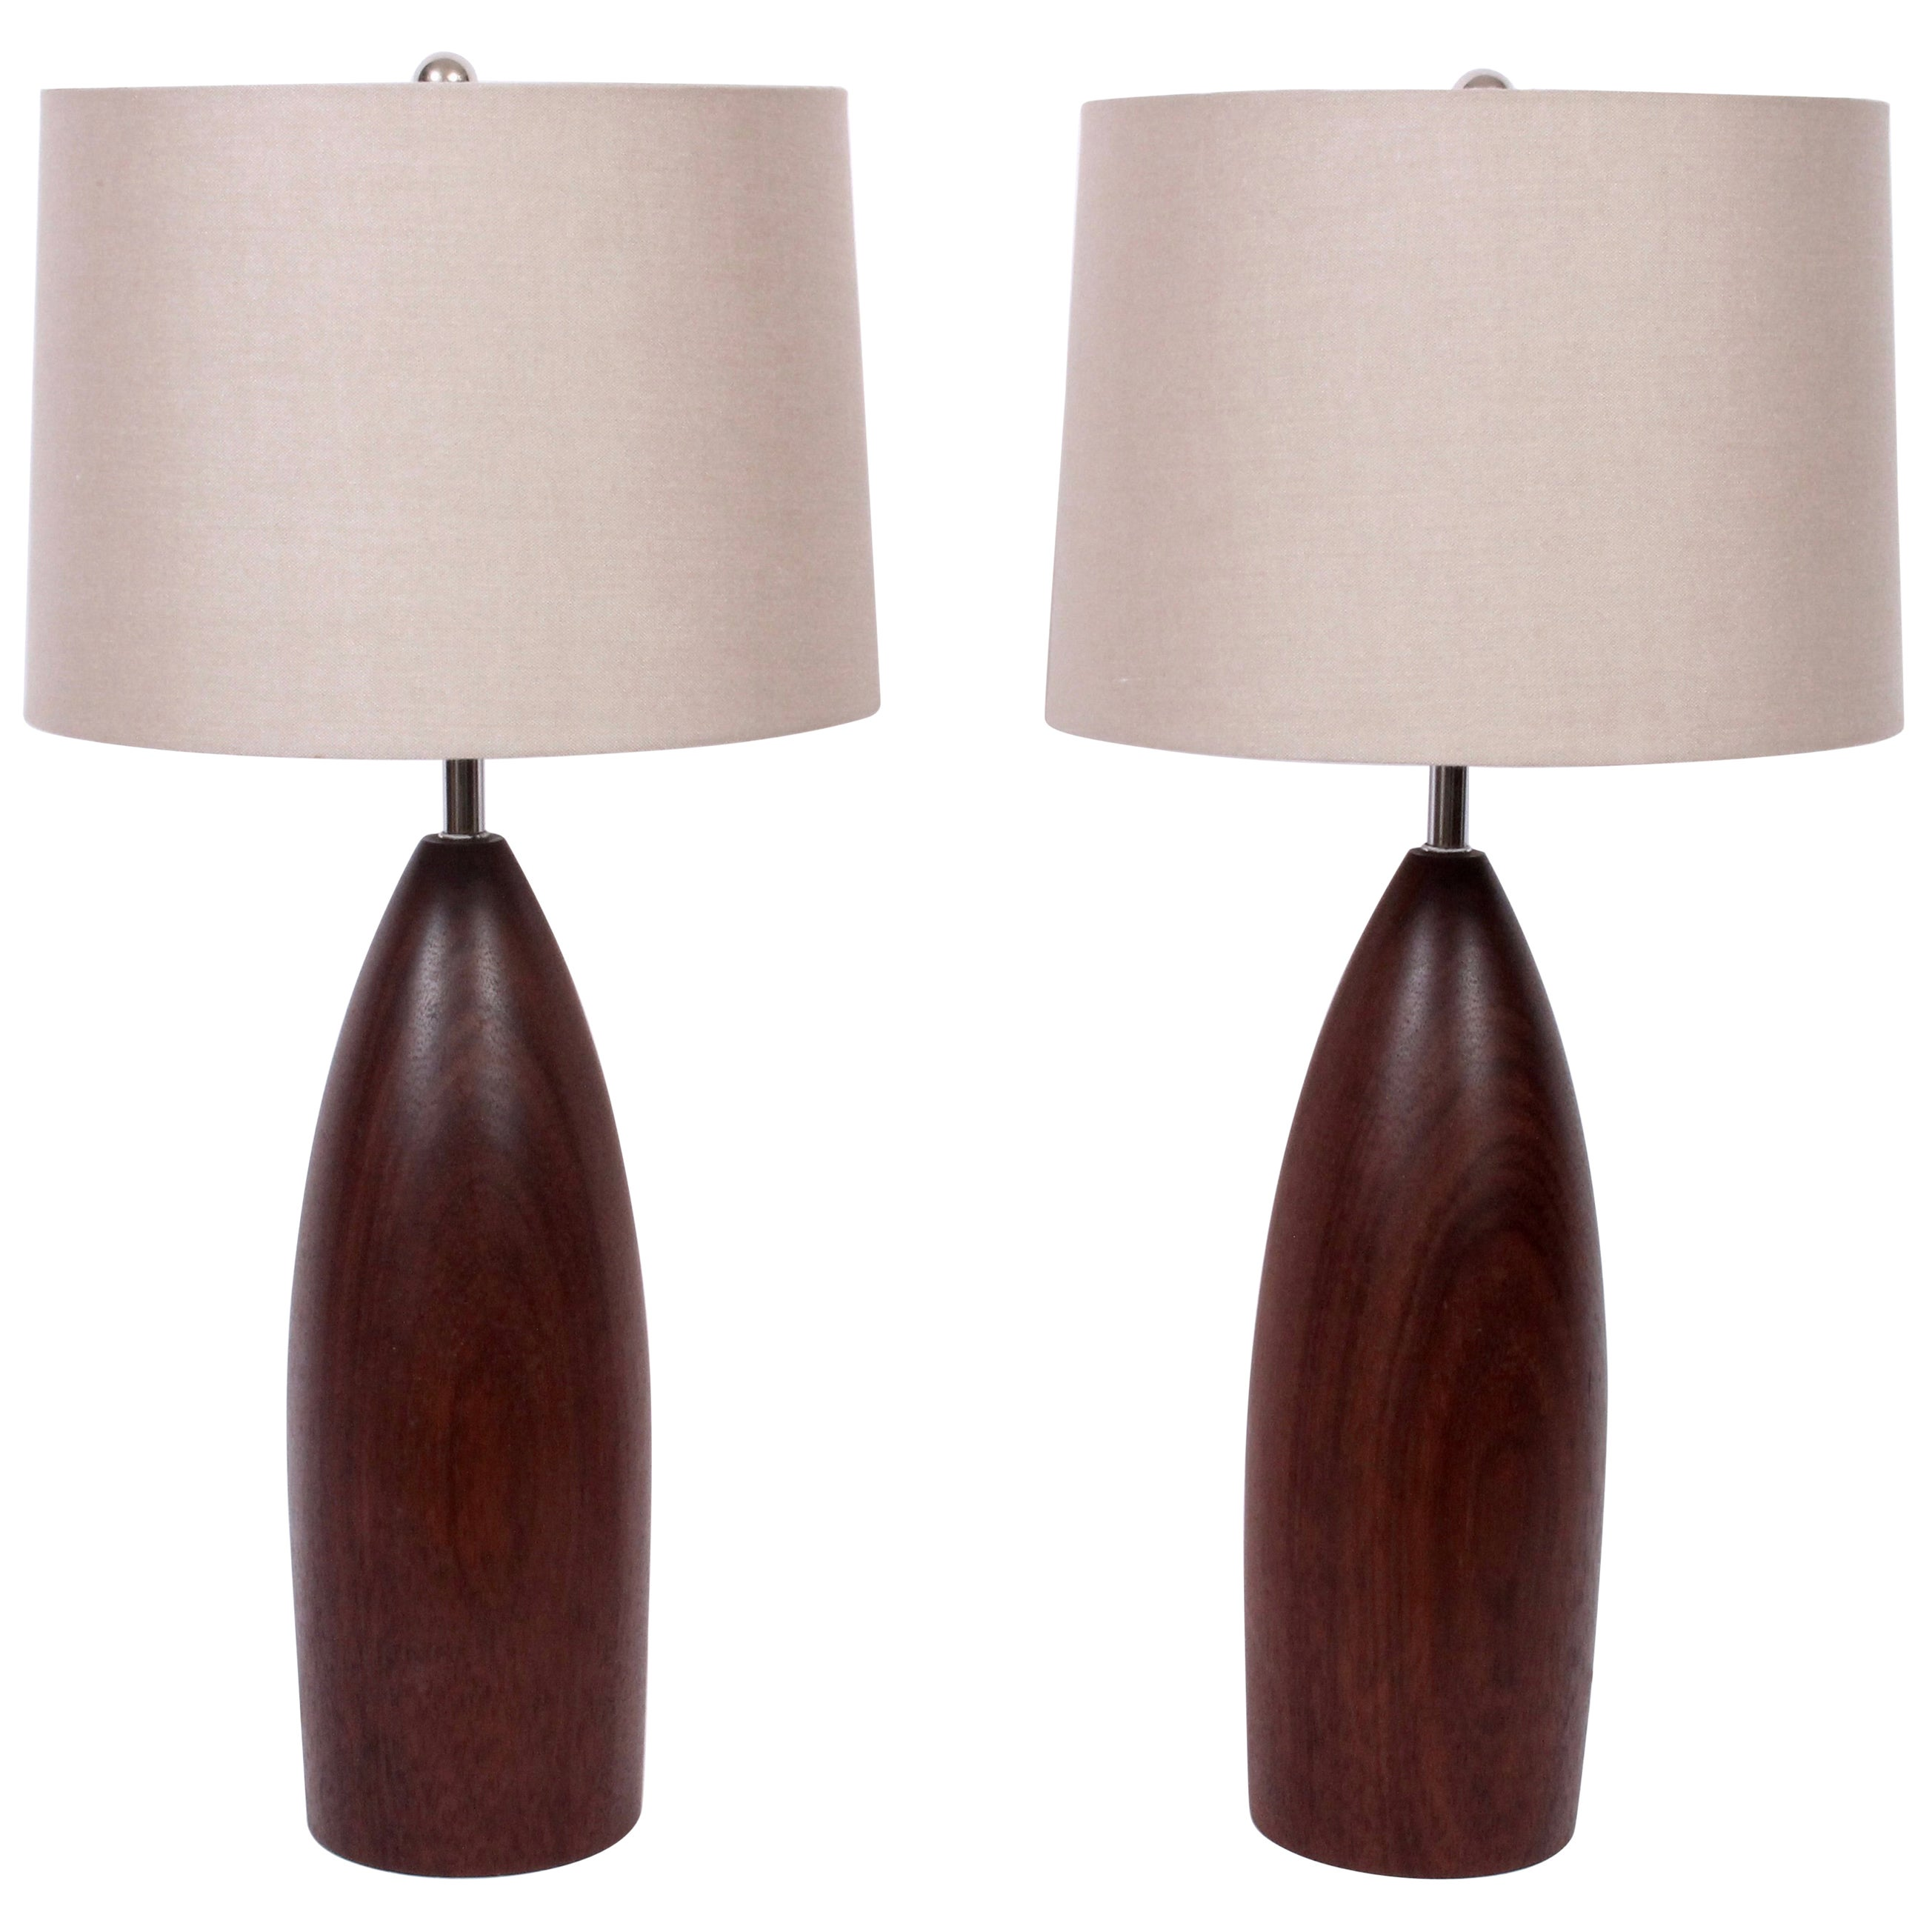 Tall Pair of ESA Danish Modern Turned Solid Dark Teak Table Lamps, circa 1960